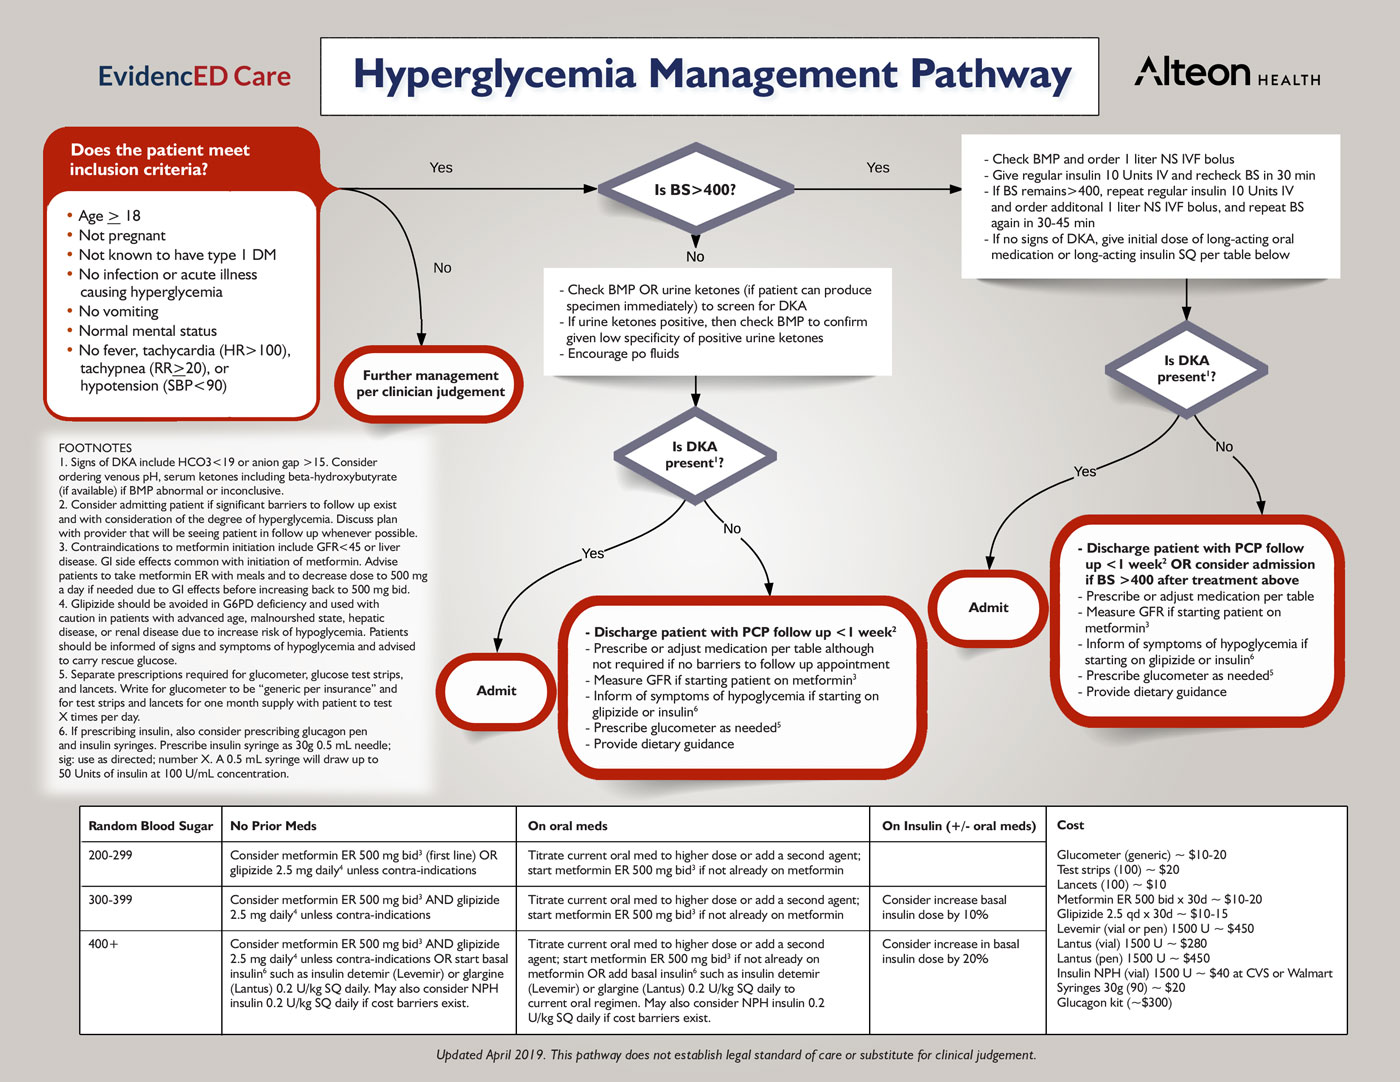 Hyperglycemia-Management-Pathway-Final-April-2019.jpg